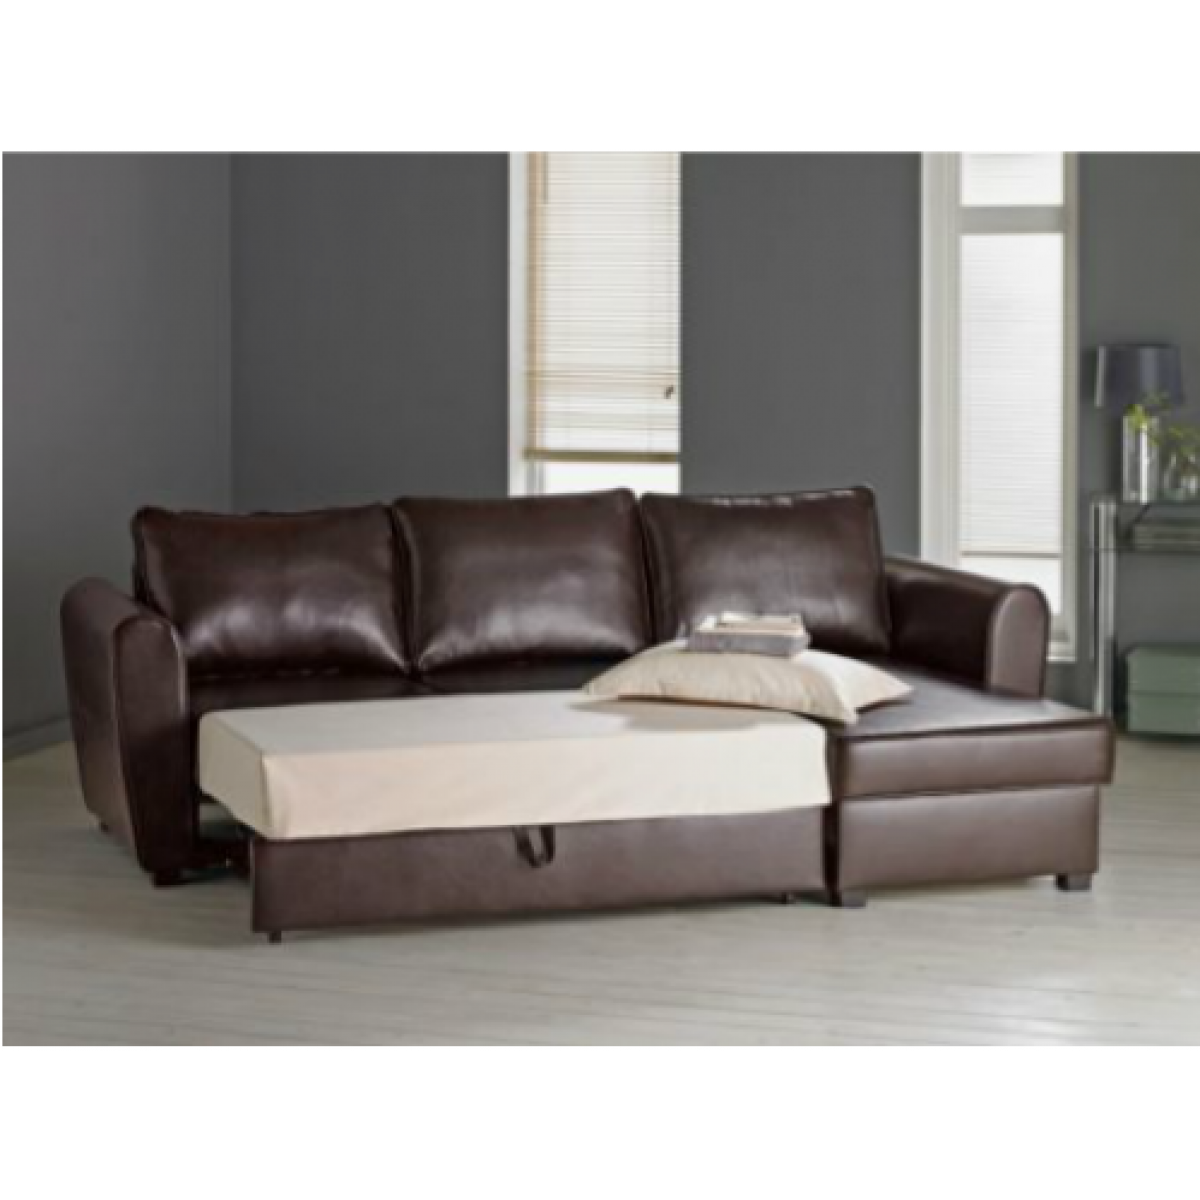 Utilize limited space with Sofa cum bed | Sofas | Corner ...